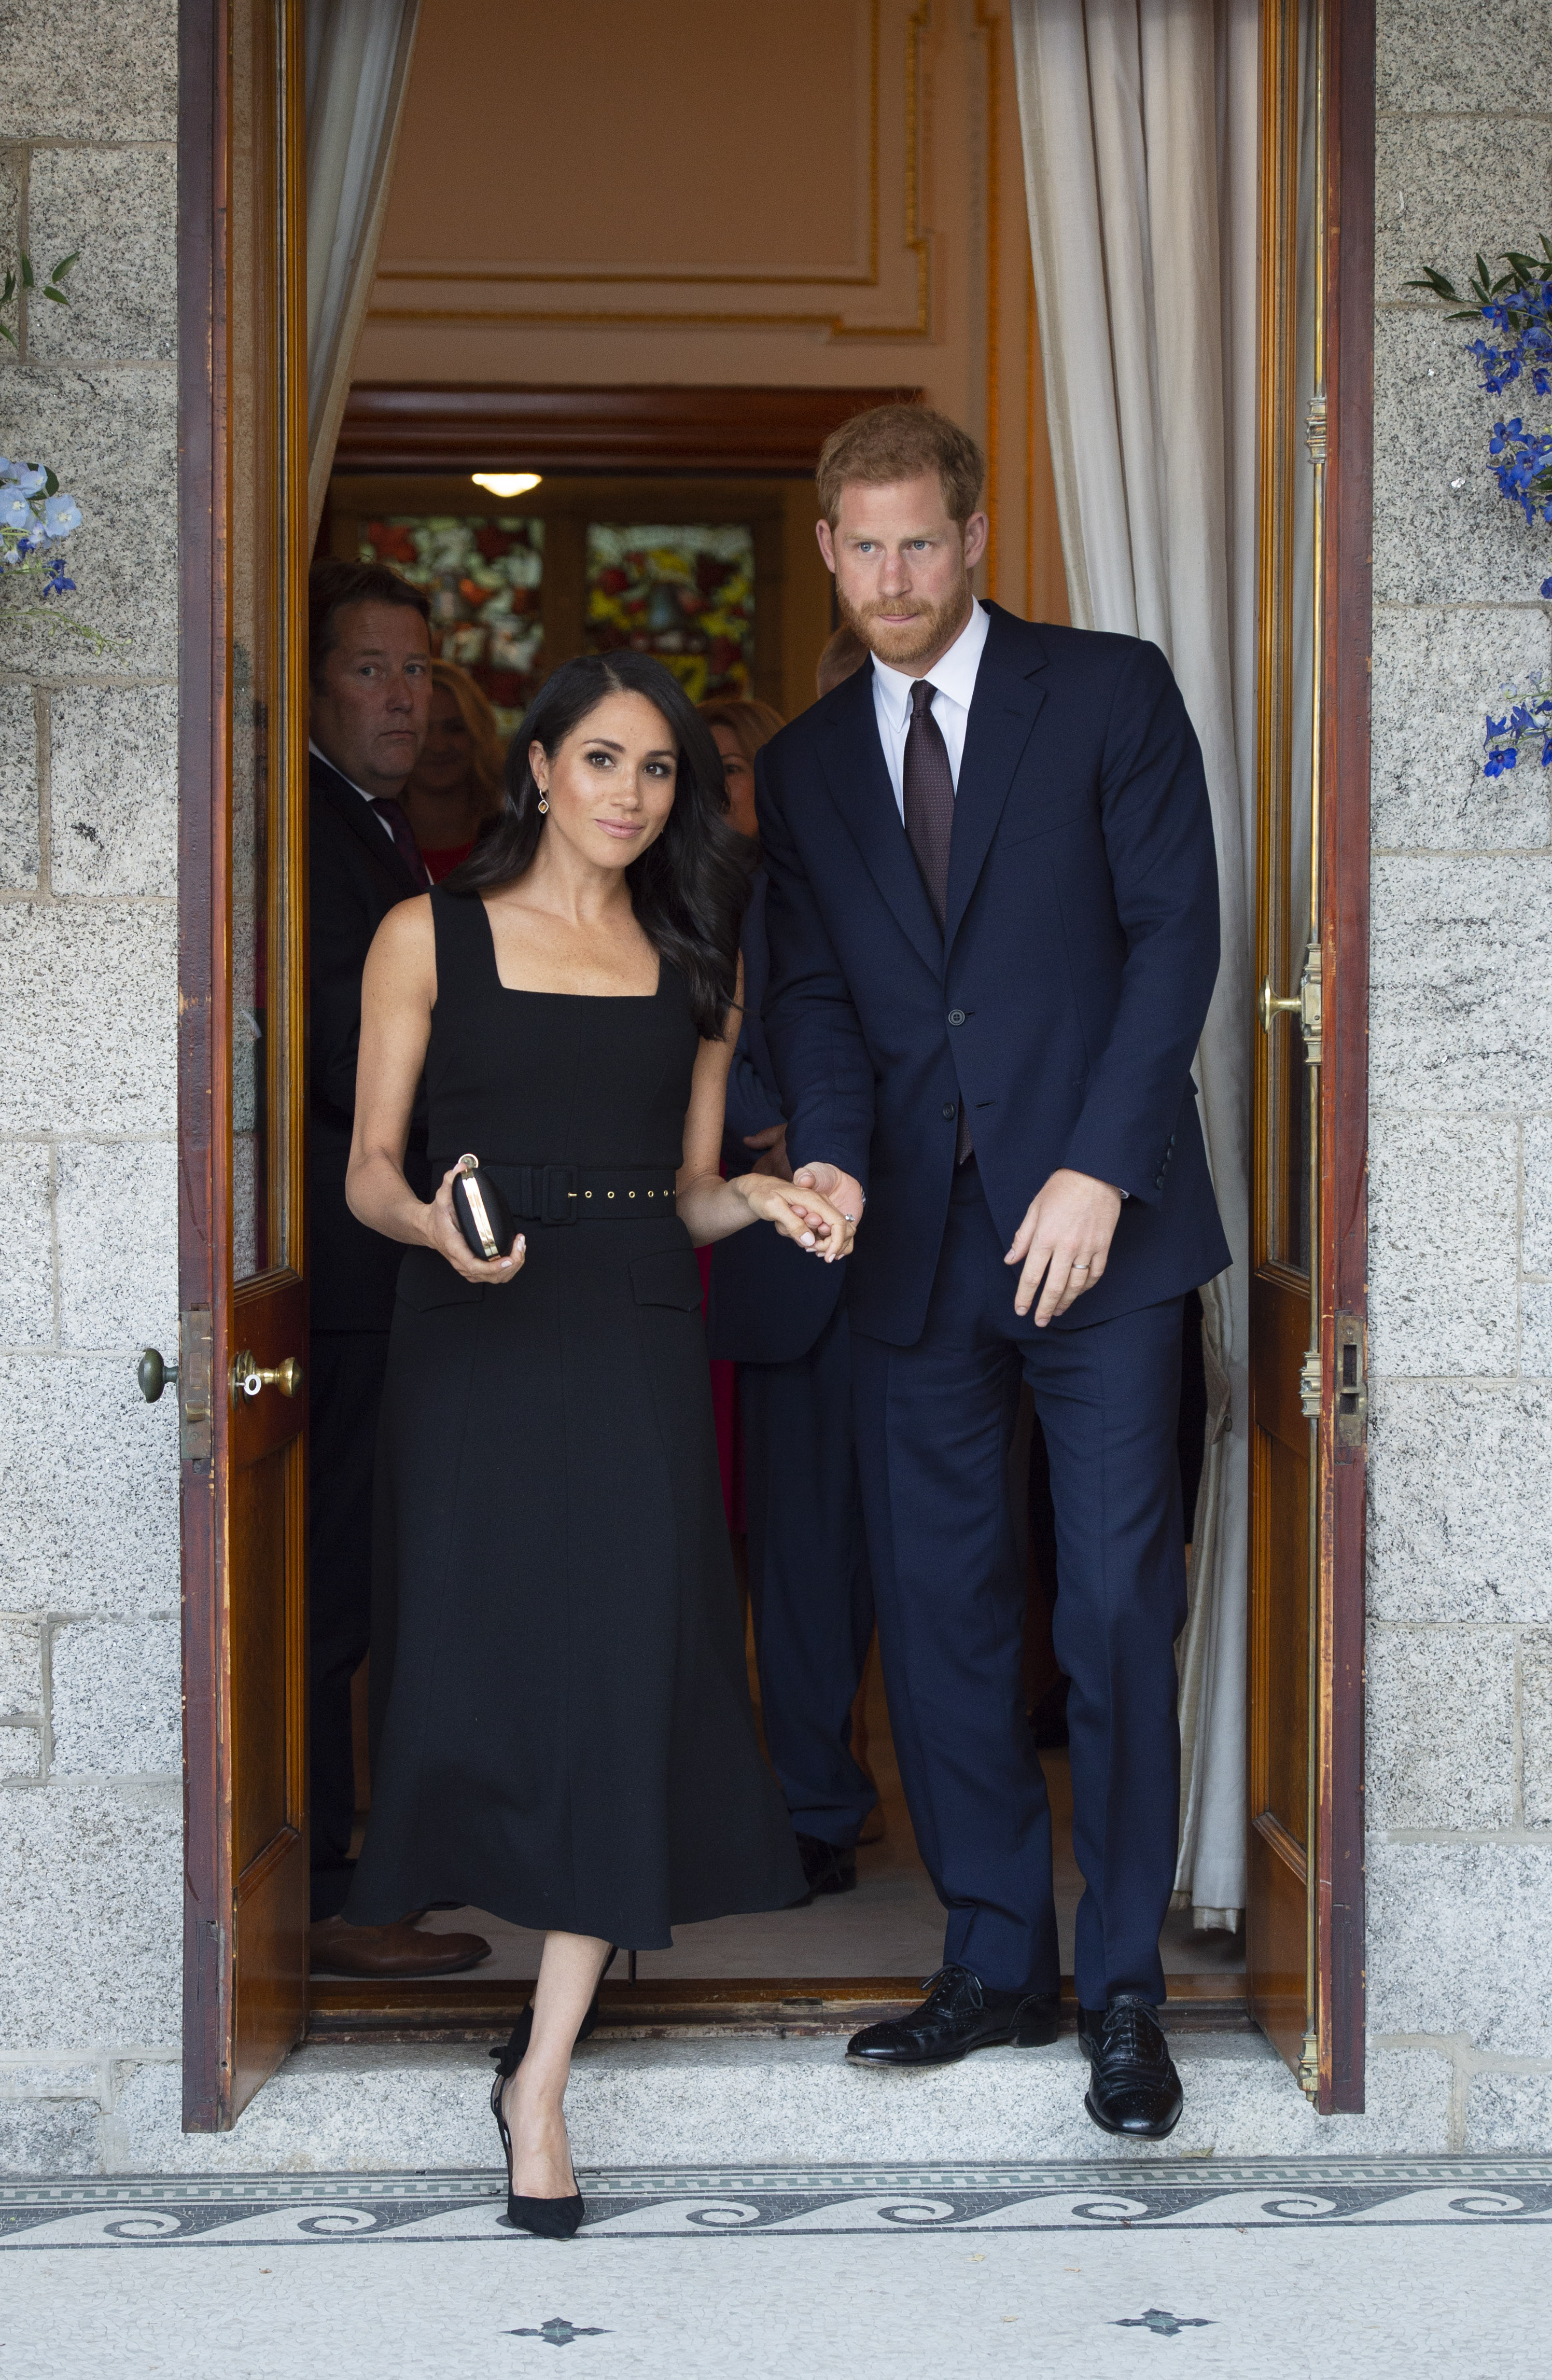 the duke and duchess of sussex visit ireland the knot news https www theknotnews com meghan markle prince harry ireland photos 31585 the duke and duchess of sussex visit ireland 2